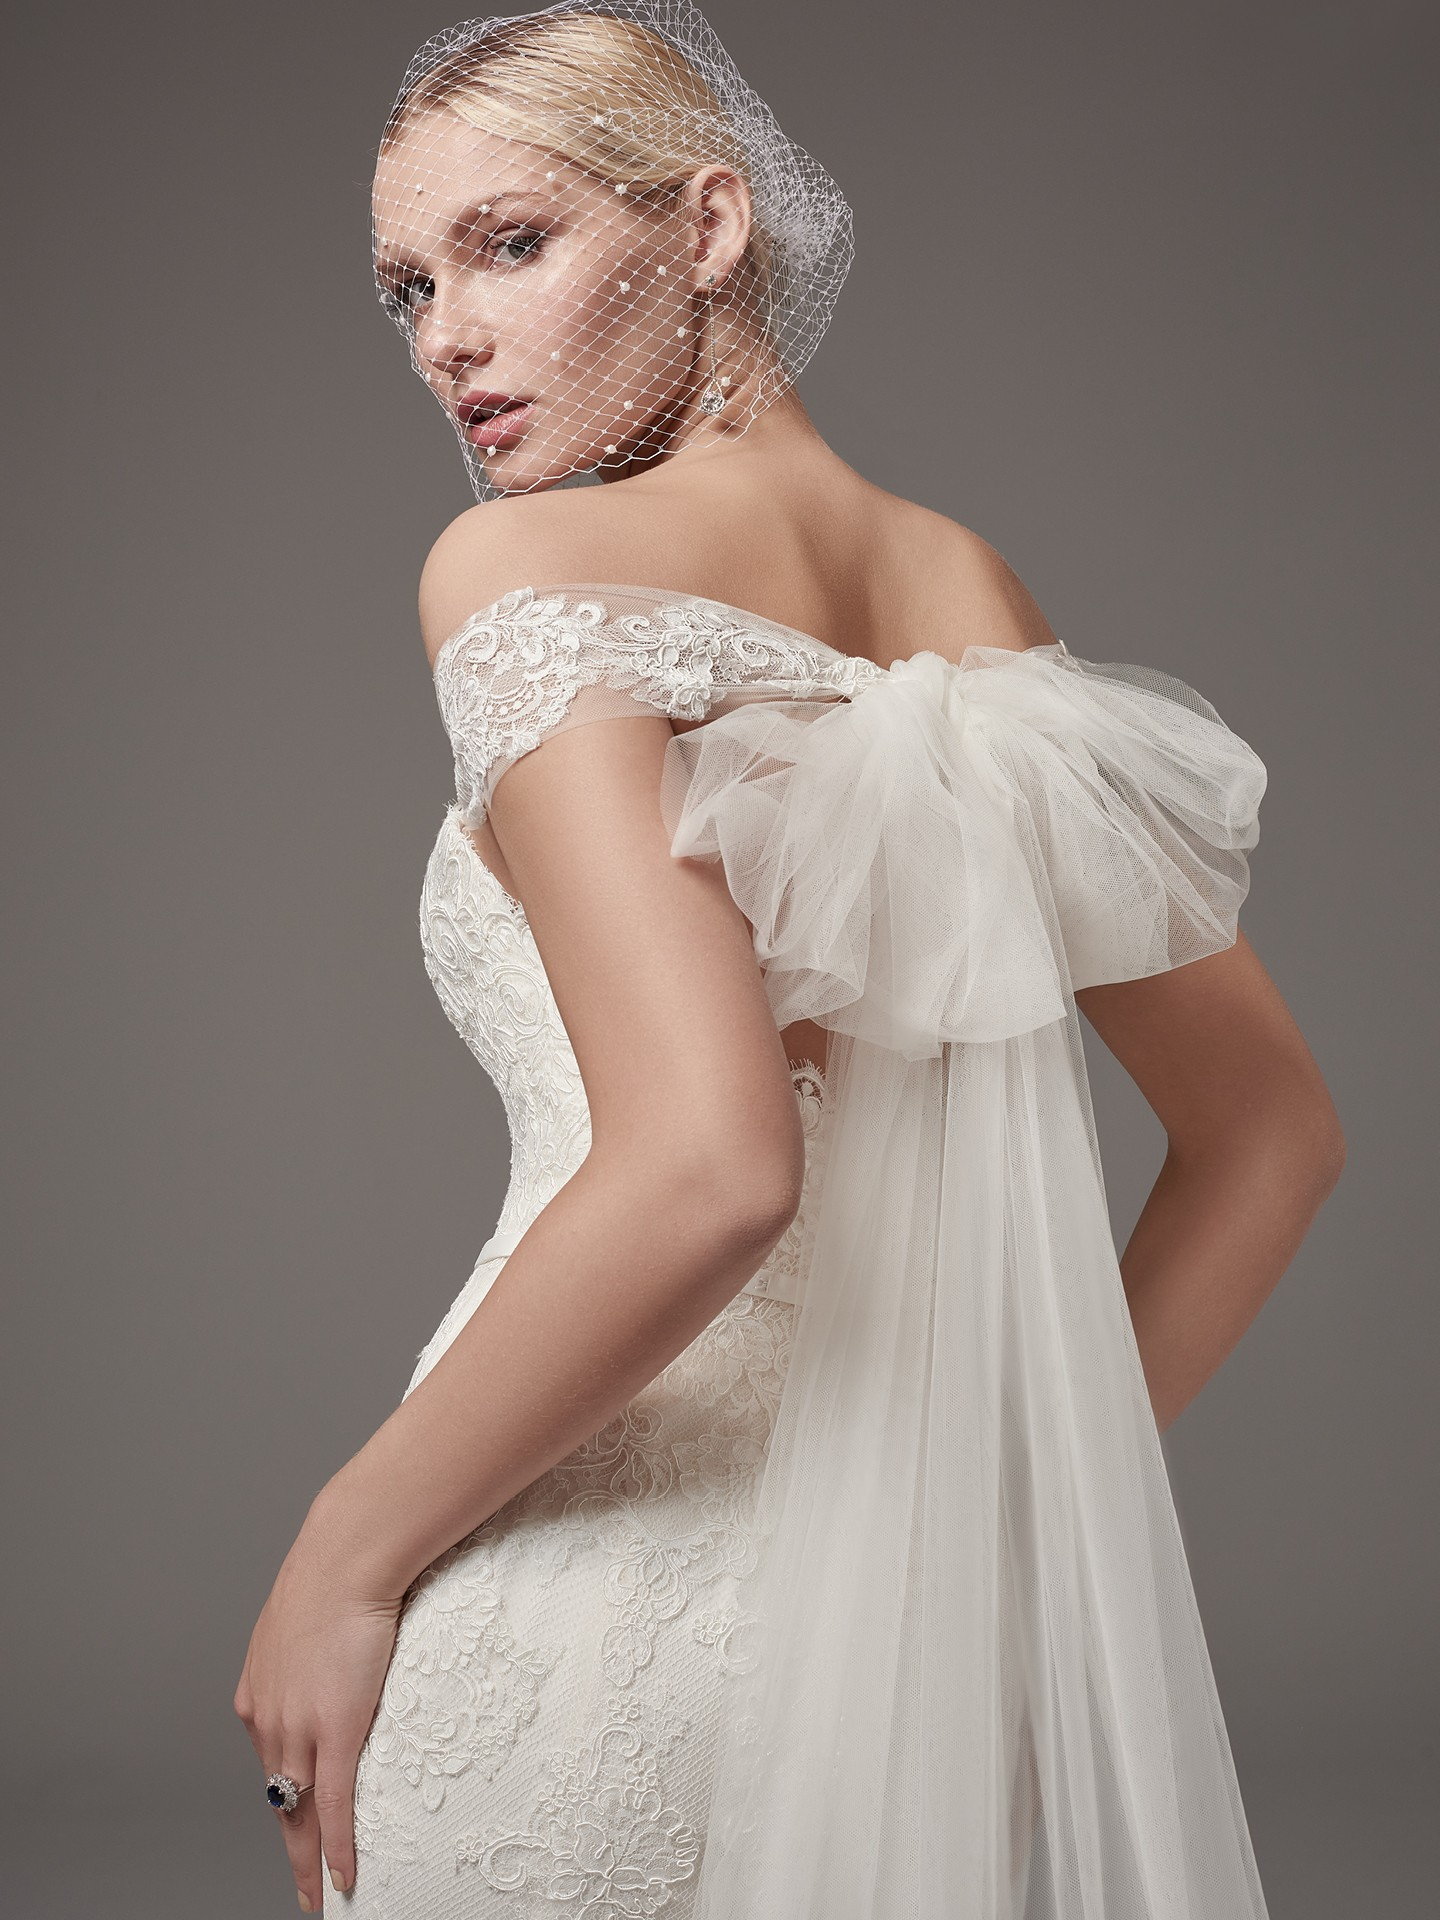 Addison wedding dress by Sottero and Midgley has a statement bow feature on the back, as well as a delicate belt with a bow. - The Latest Wedding Dress Trends for Engagement Season 2018